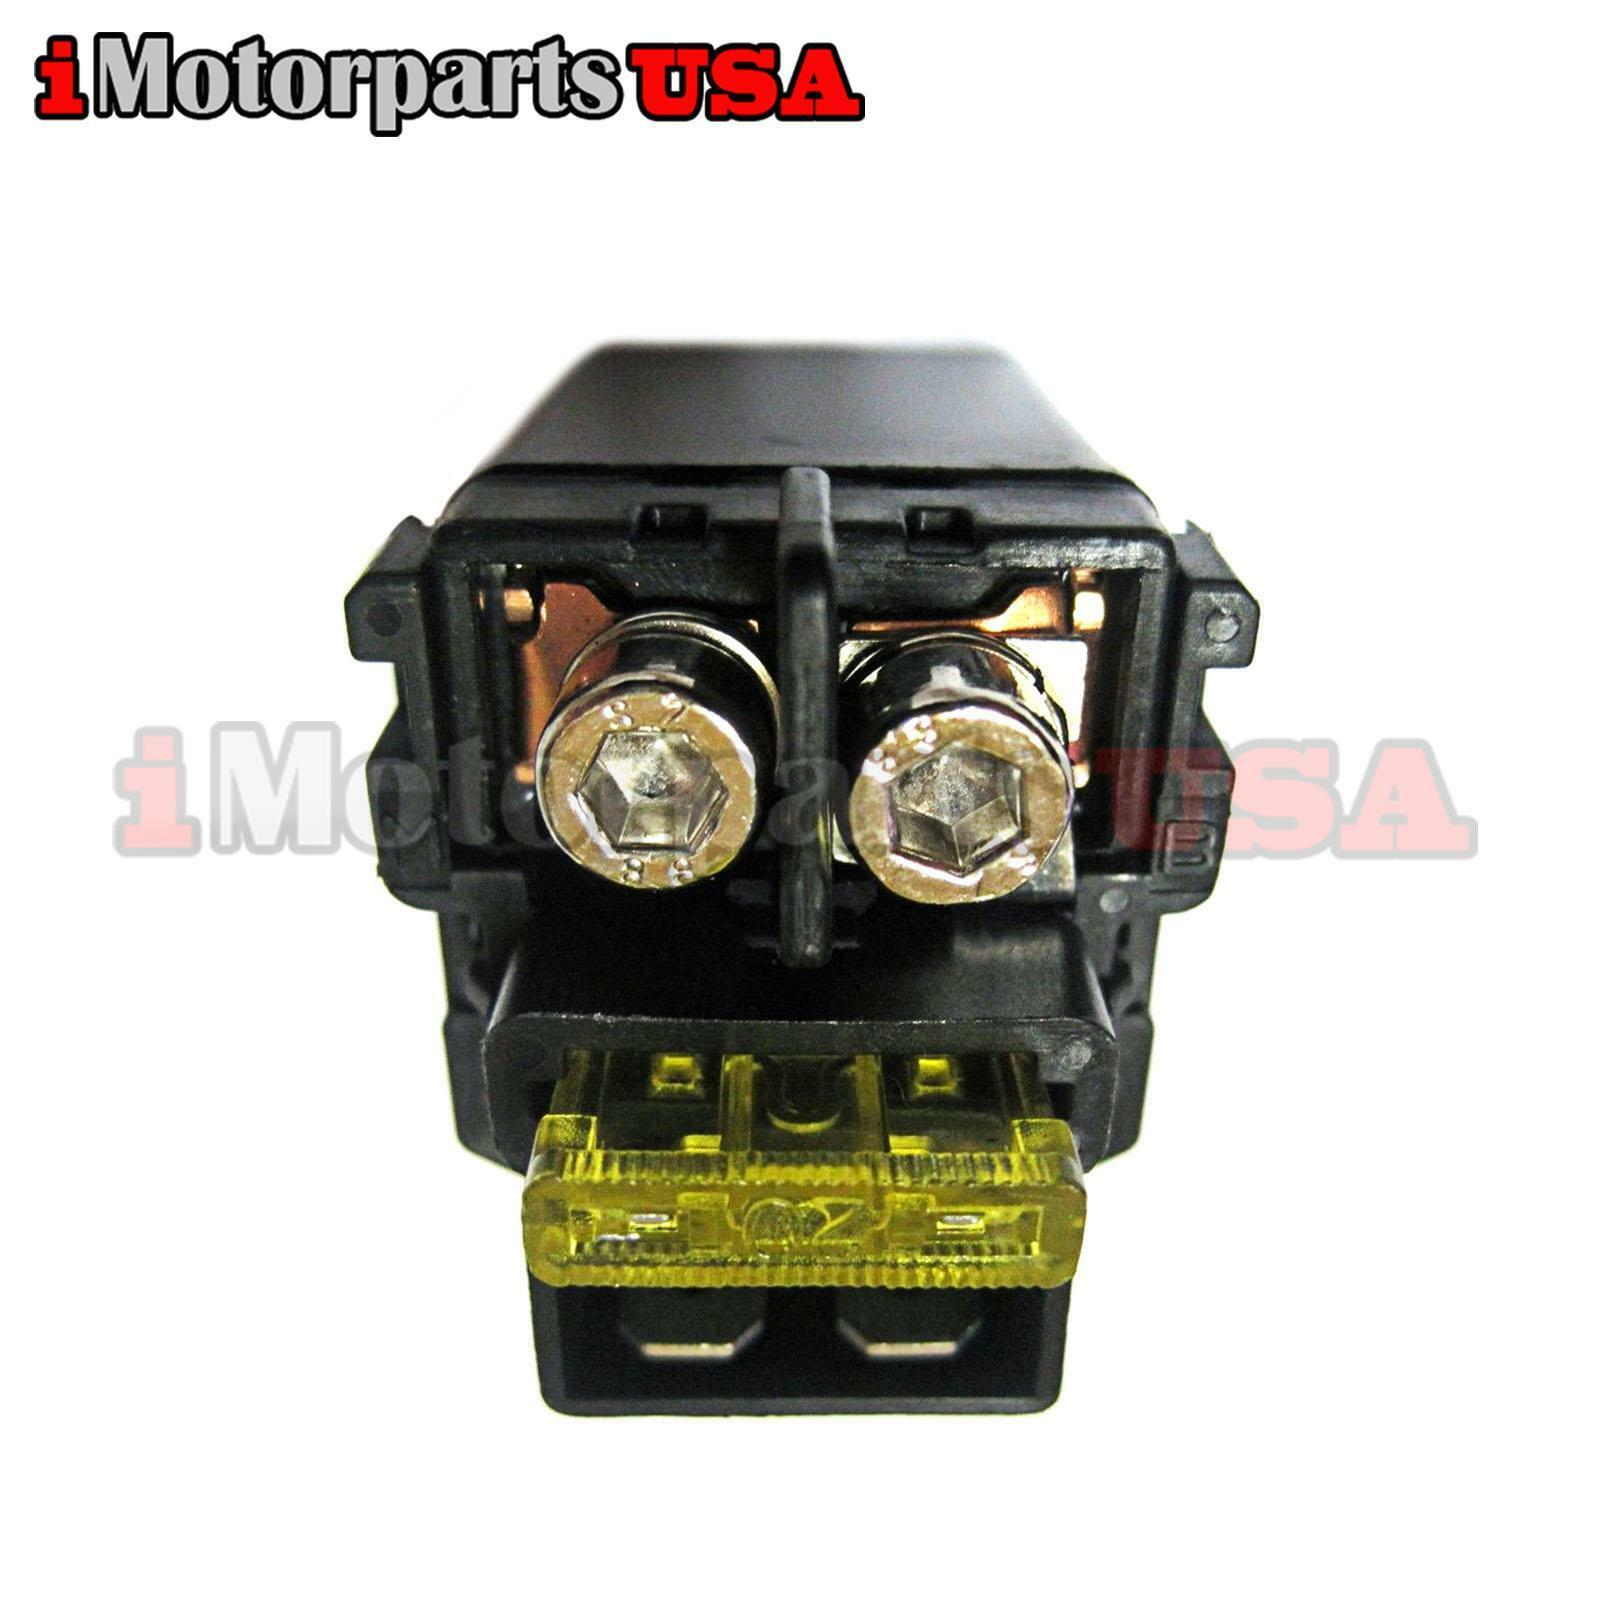 manco talon parts accessories starter relay solenoid manco talon linhai bighorn big daddy 260cc 300cc atv utv